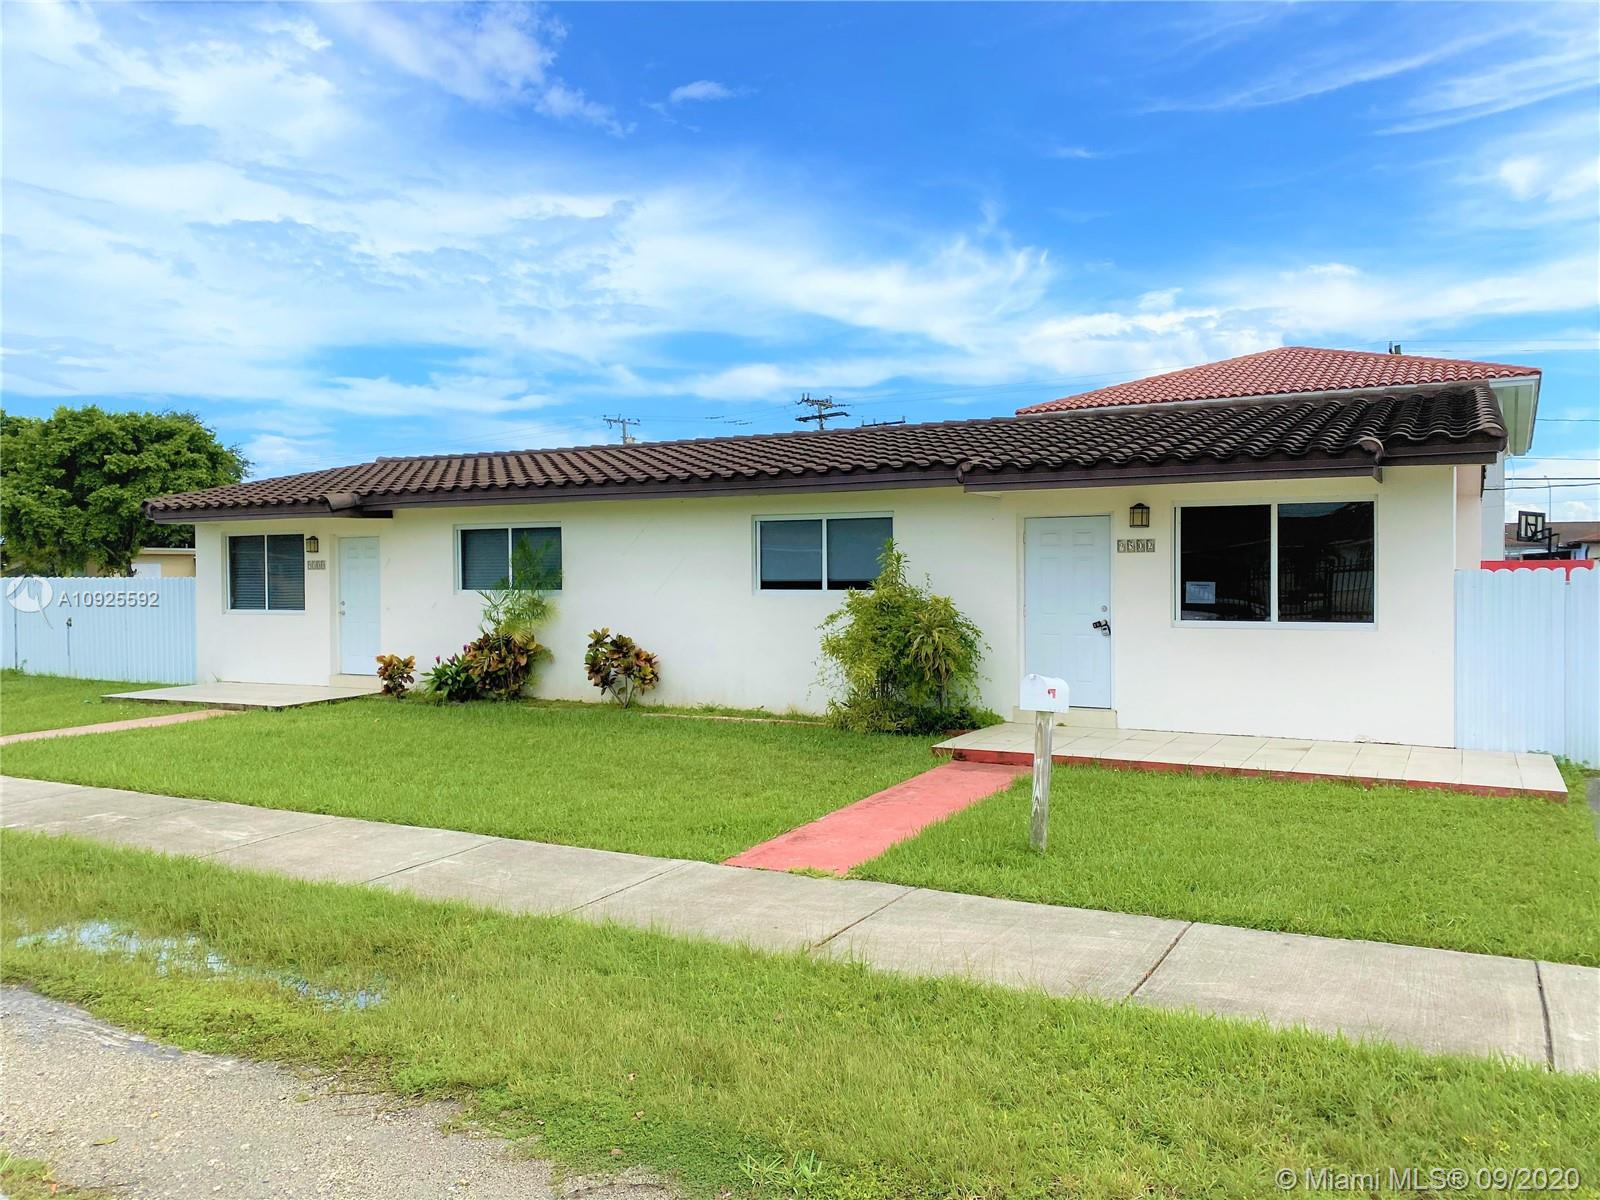 "Tremendous opportunity to purchase an updated duplex in an unbeatable location! Major upgrades have been completed to both units and requires very little work to be ""rent ready"" or to become your new home. Tile thorough-out, remodeled bathrooms and metal fence. Conveniently located near major expressways, Tropical Park and shopping centers. Non-confirming use due to illegal detached addition at side of original structure. Buyer must assume and bring into compliance post closing. A great investment!"